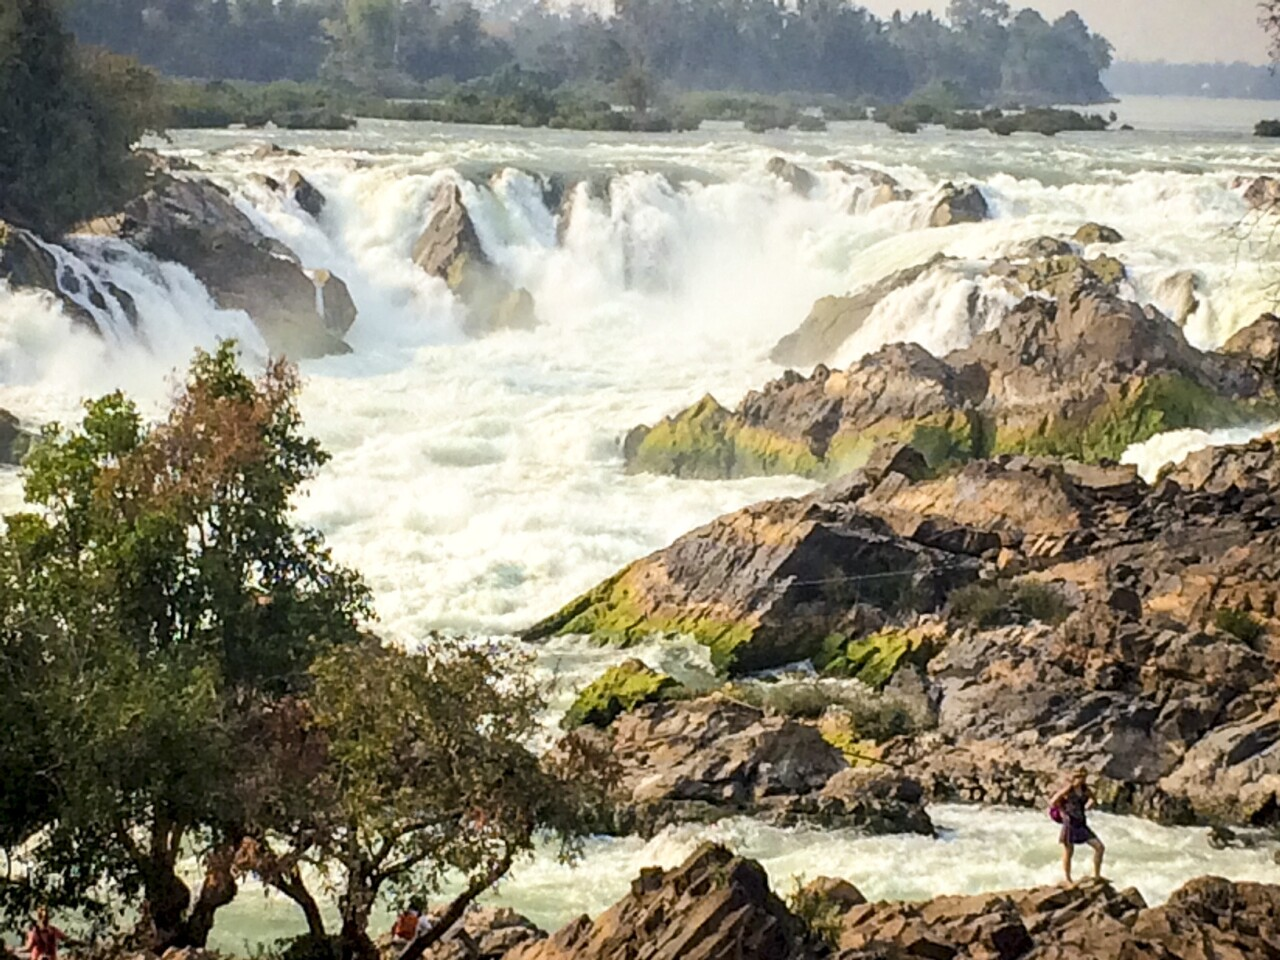 Khone Phapheng in southern Laos is the largest waterfall in Southeast Asia. It is 70 feet high and the confluence of six miles of rapids.